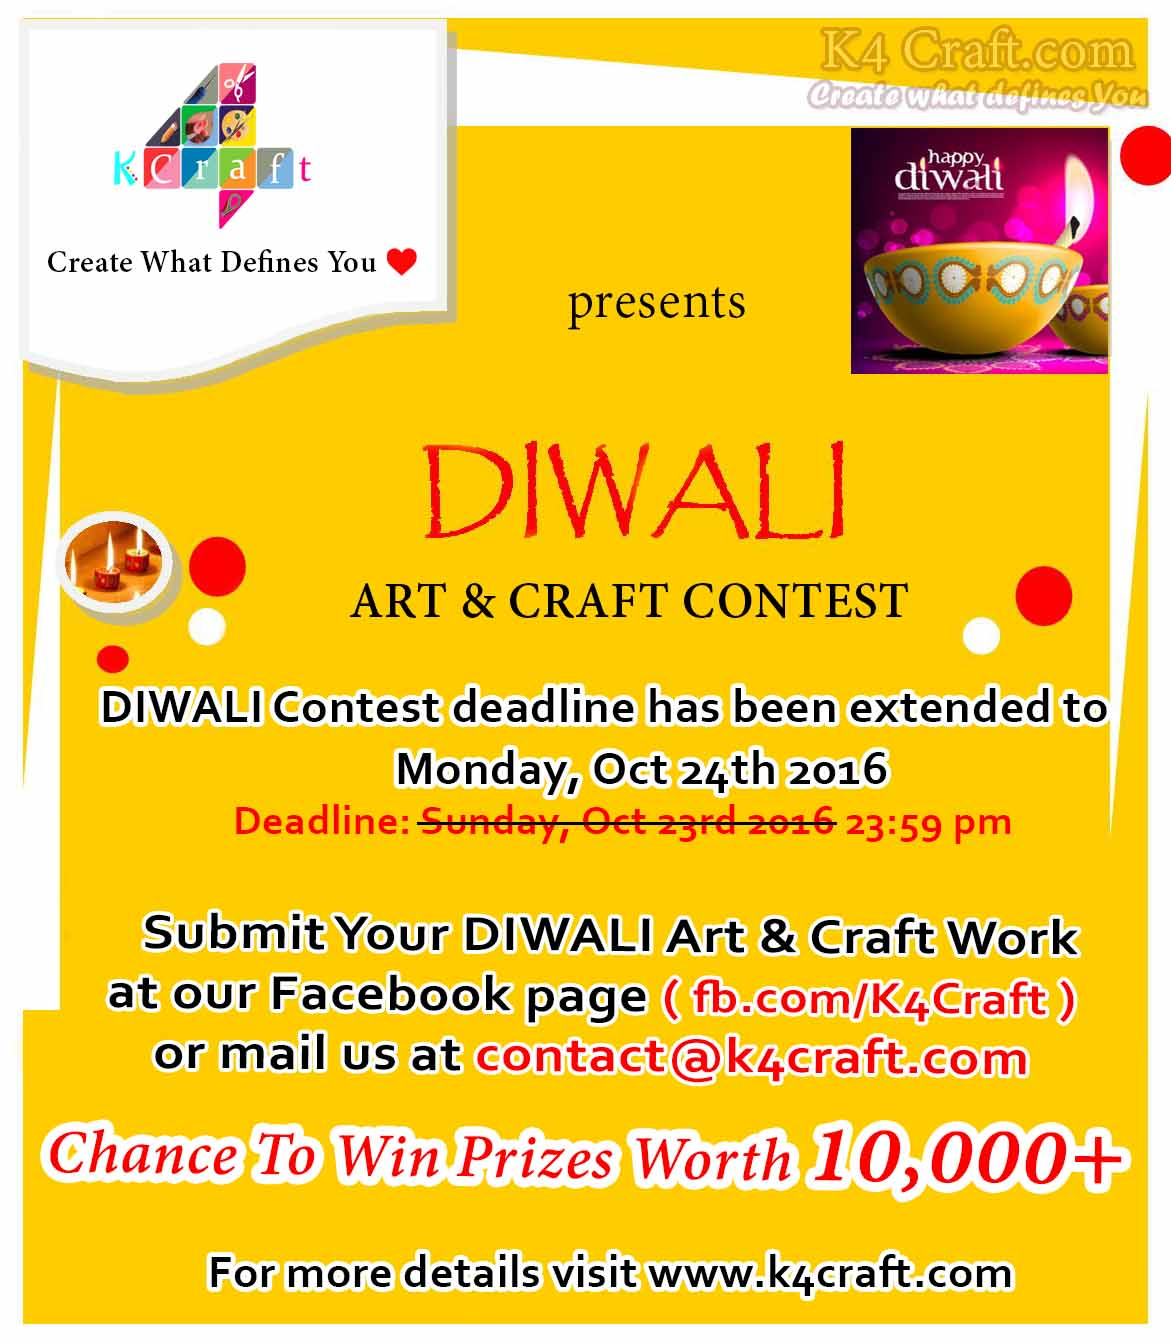 diwali-art-and-crfat-contest-k4craft1